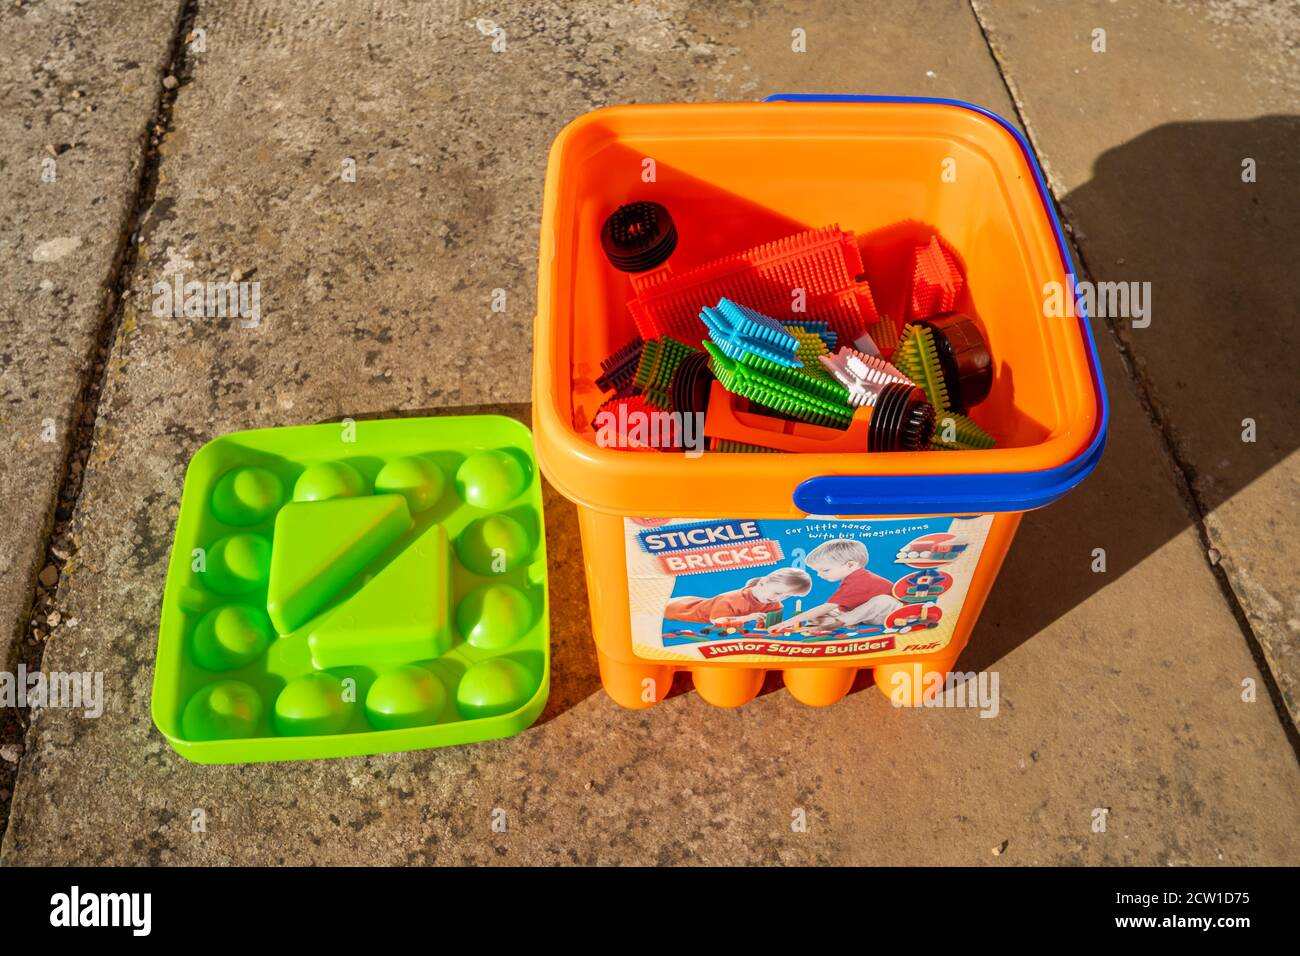 A tub of stickle bricks, a construction toy for young children invented in 1969 by Denys Fisher Stock Photo